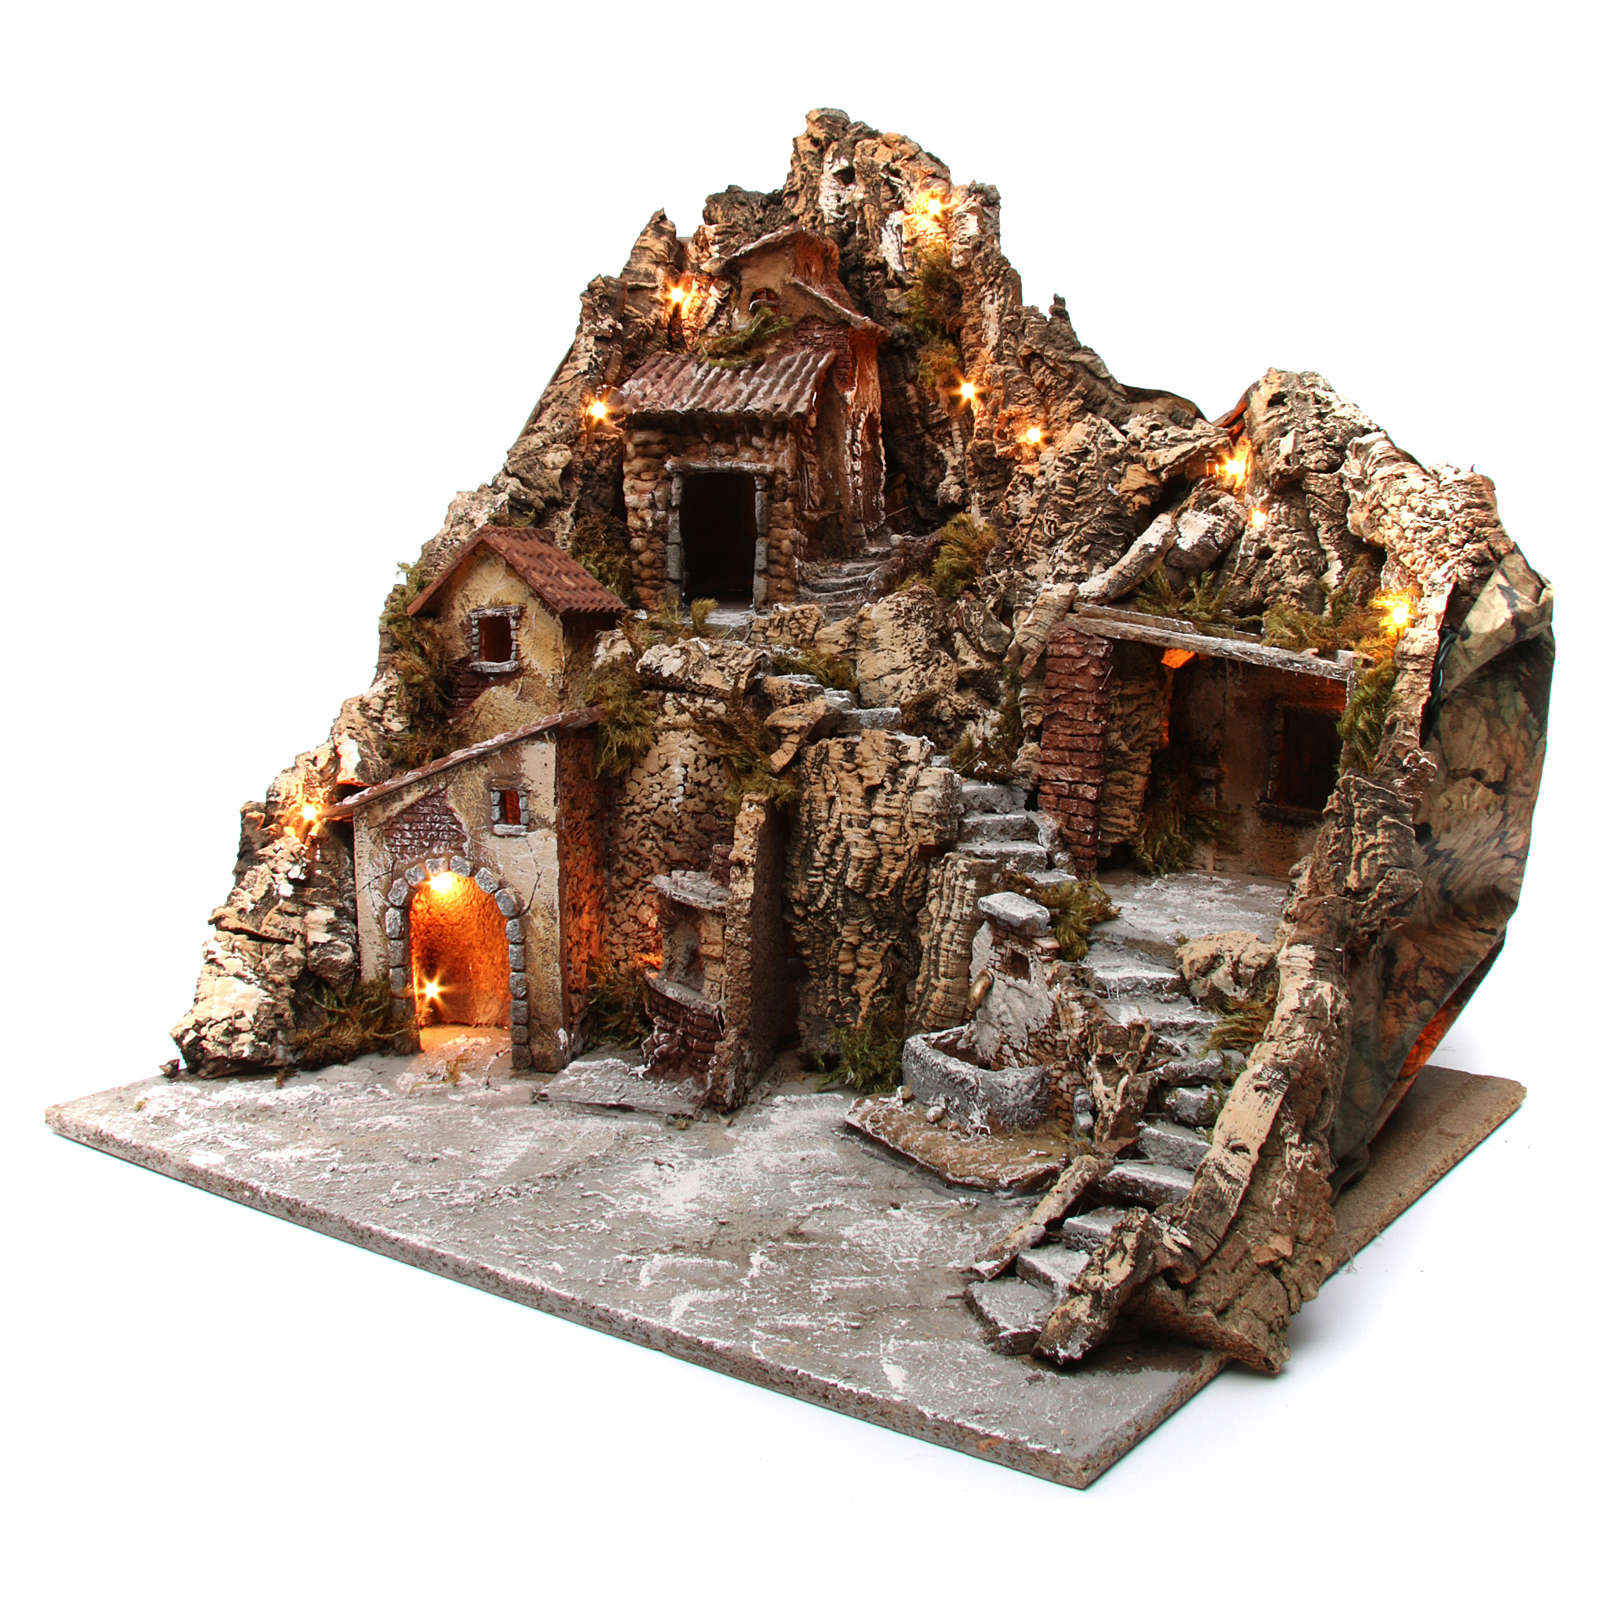 Nativity scene with lights, fountain and oven 55x60x60 cm, Neapolitan style 4